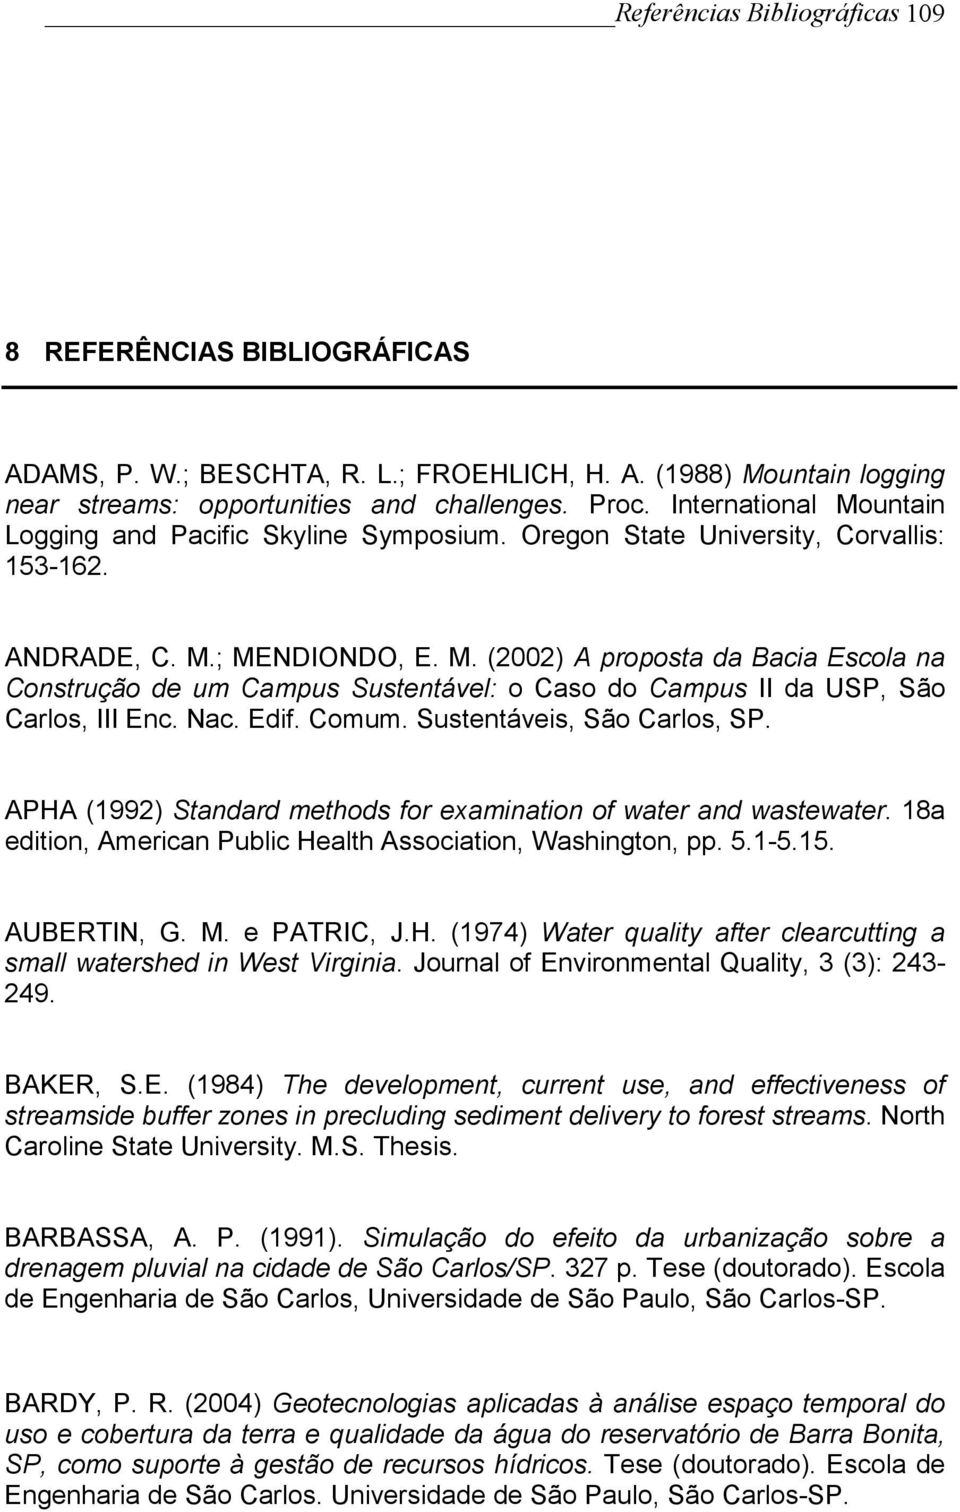 Nac. Edif. Comum. Sustentáveis, São Carlos, SP. APHA (1992) Standard methods for examination of water and wastewater. 18a edition, American Public Health Association, Washington, pp. 5.1-5.15.